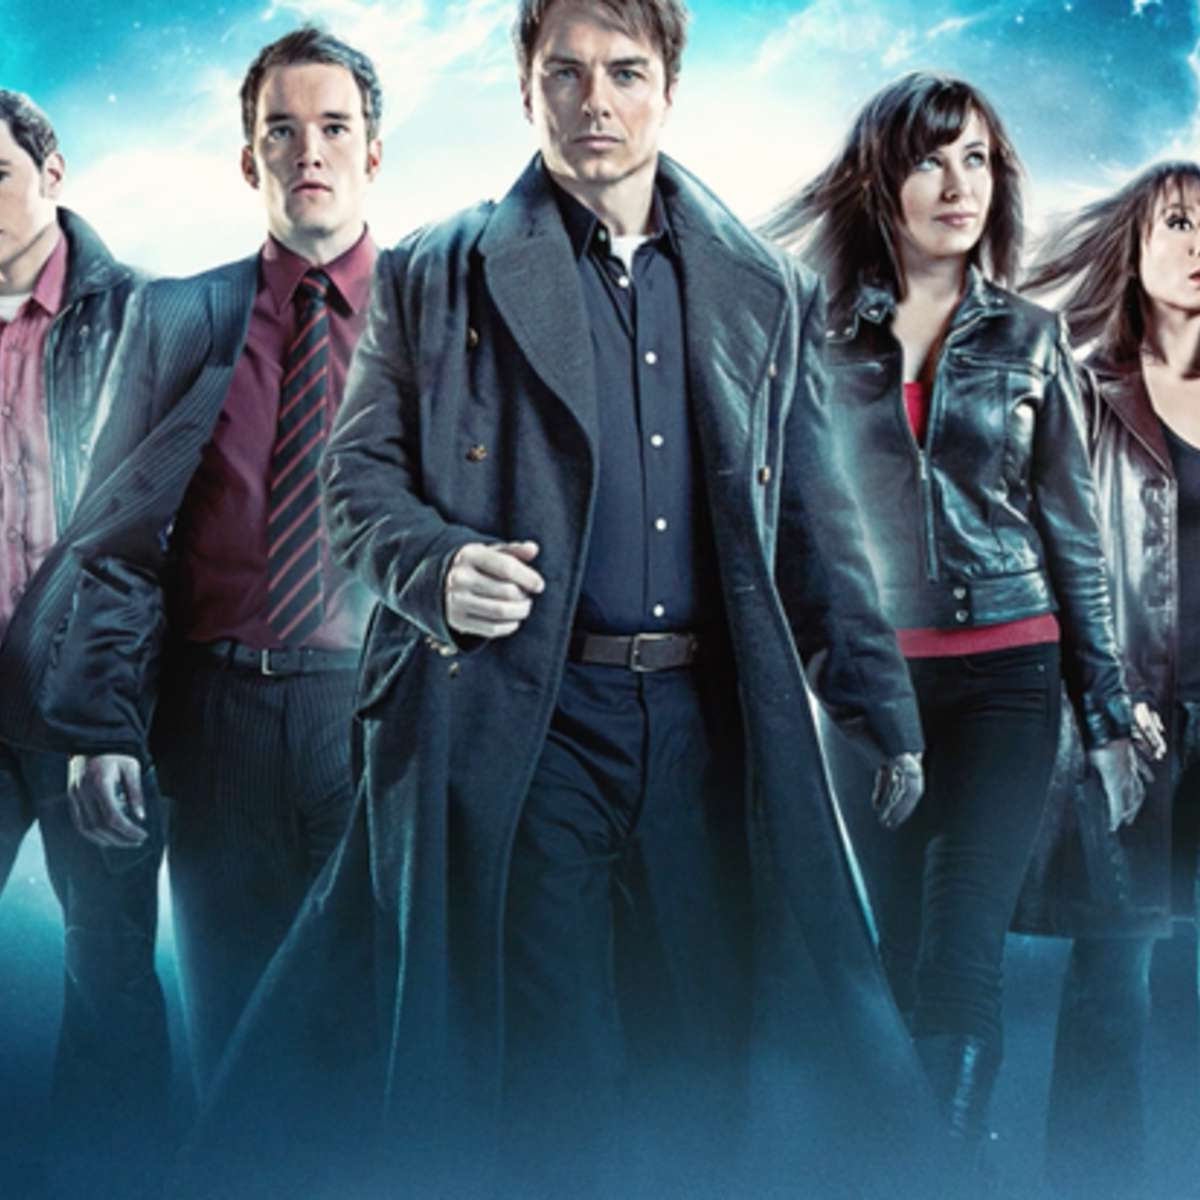 torchwood-believe-image-2e7a484.png